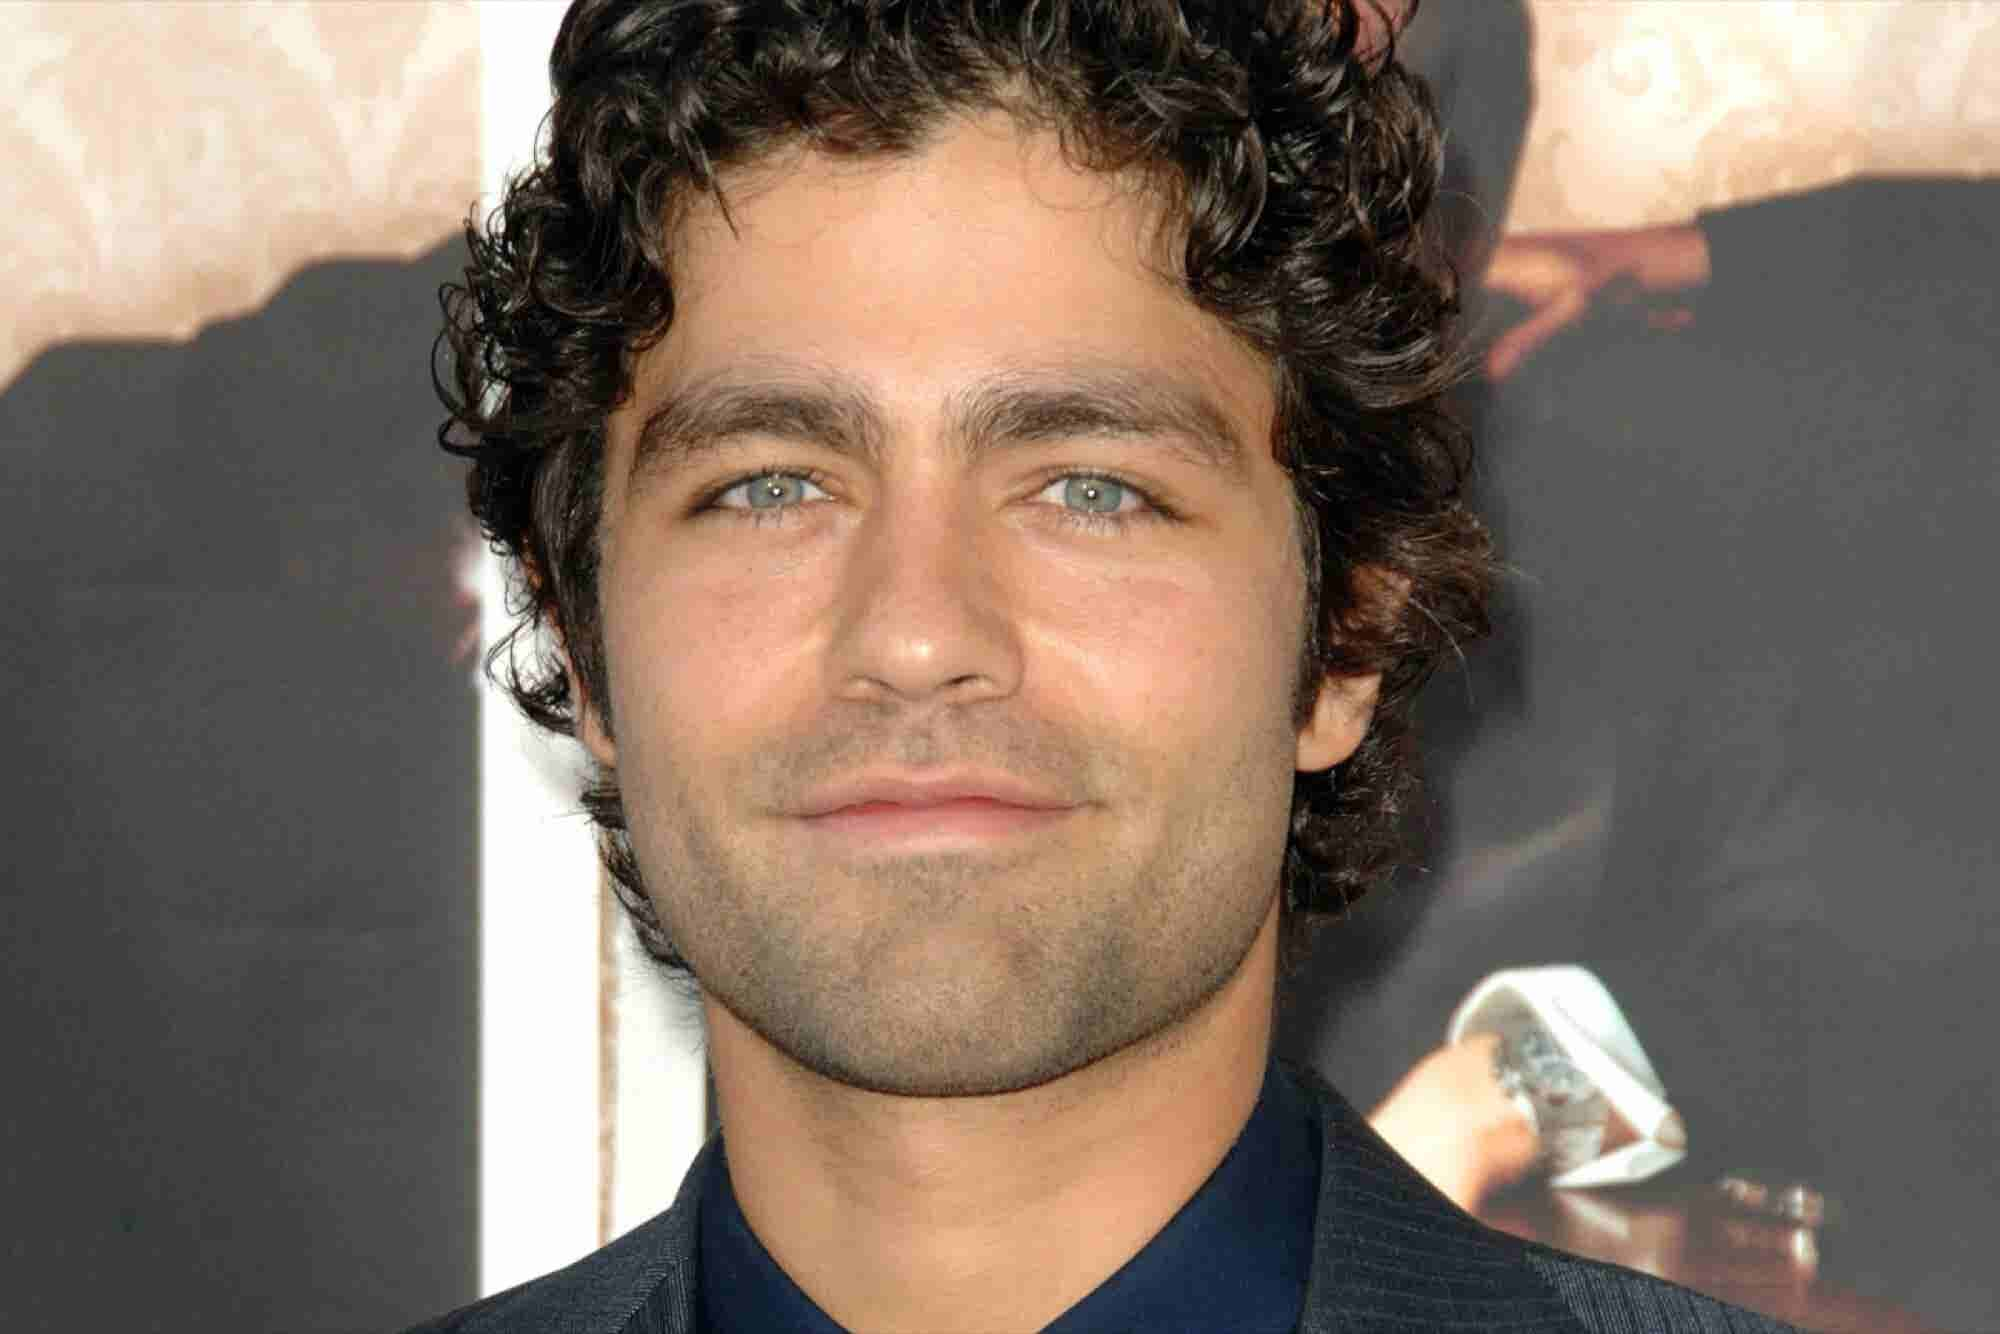 For Actor Adrian Grenier, 'Social Entrepreneurship' Is More Than Just a Buzzword